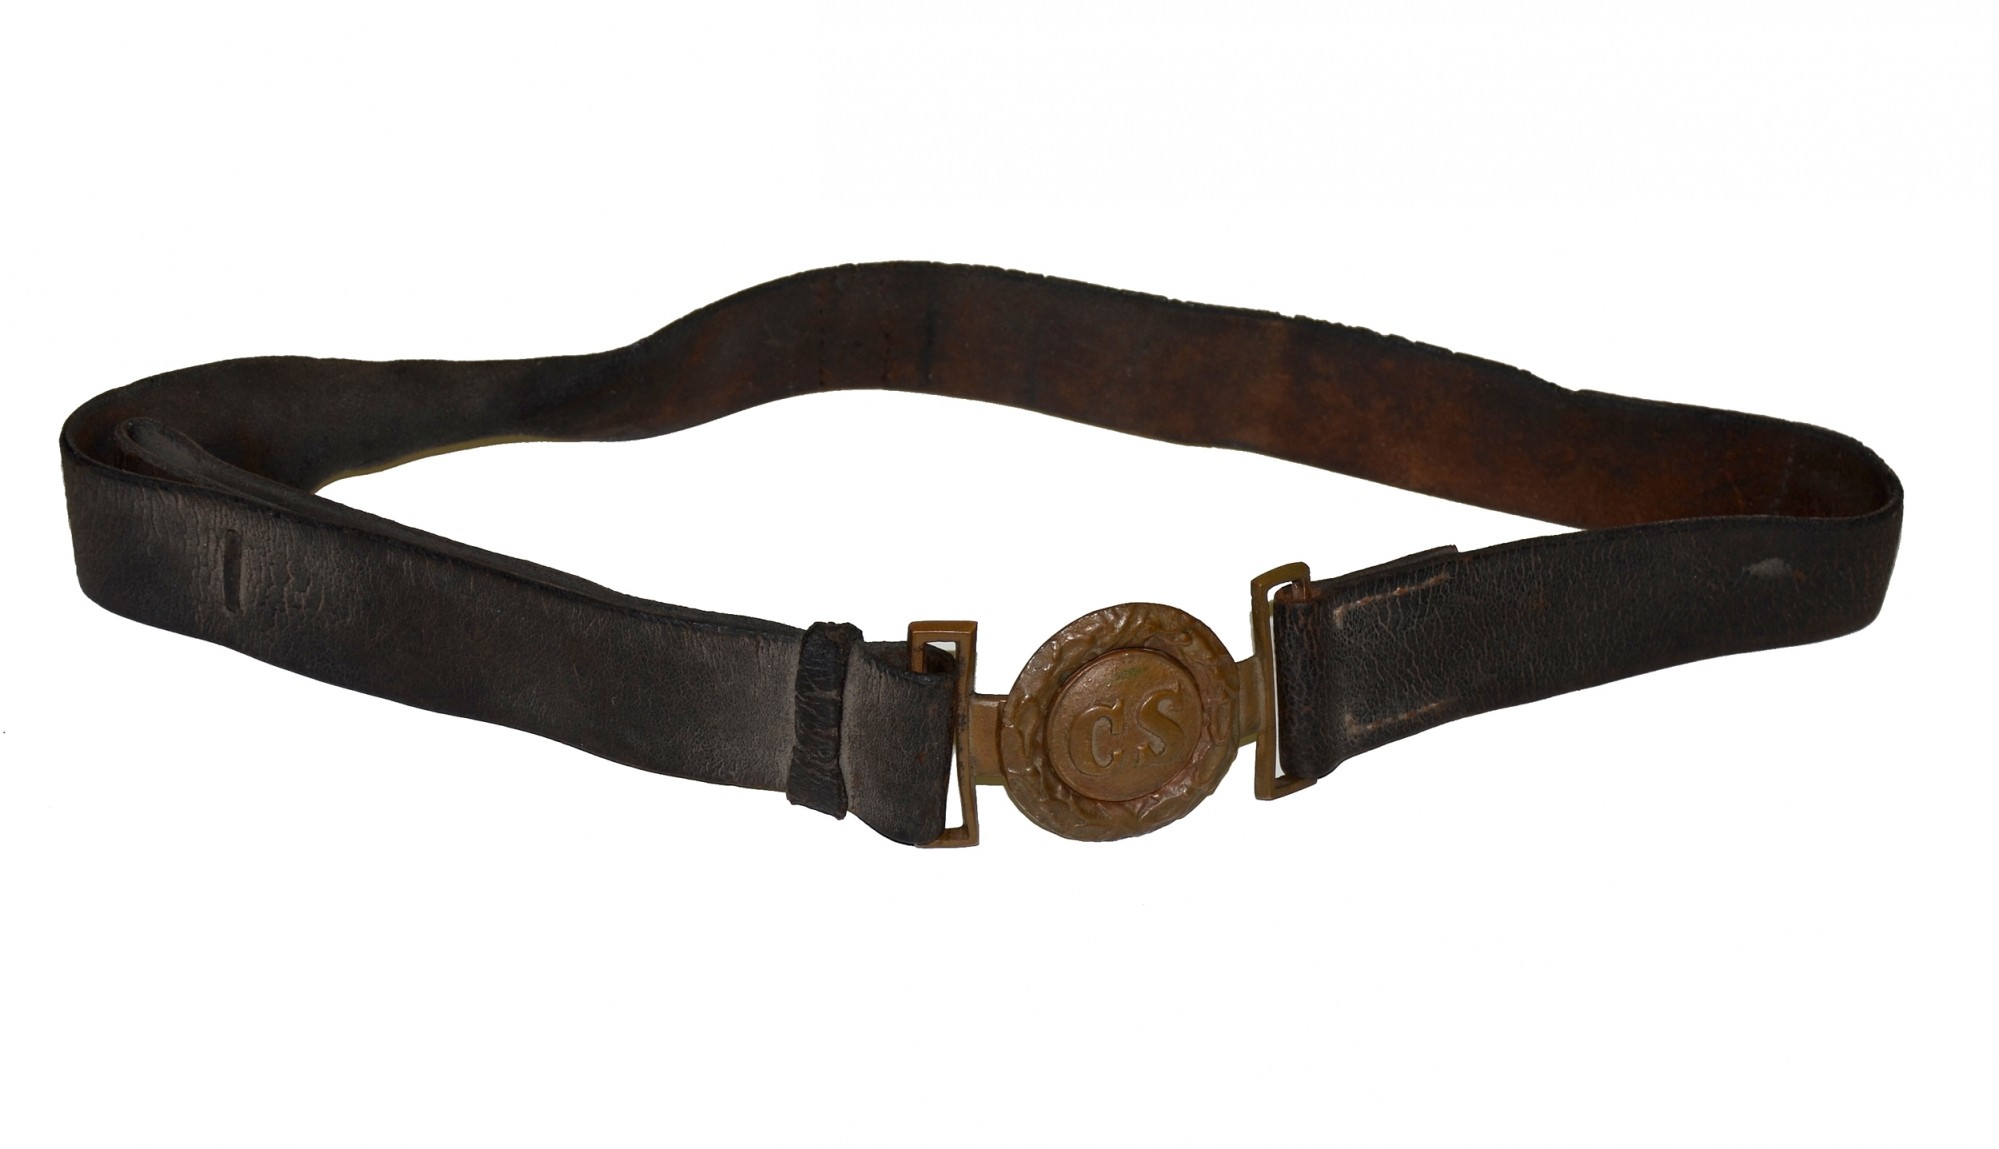 ORIGINAL CONFEDERATE TONGUE AND WREATH BUCKLE ON ATTACHED NON-DUG, LEATHER WAIST BELT